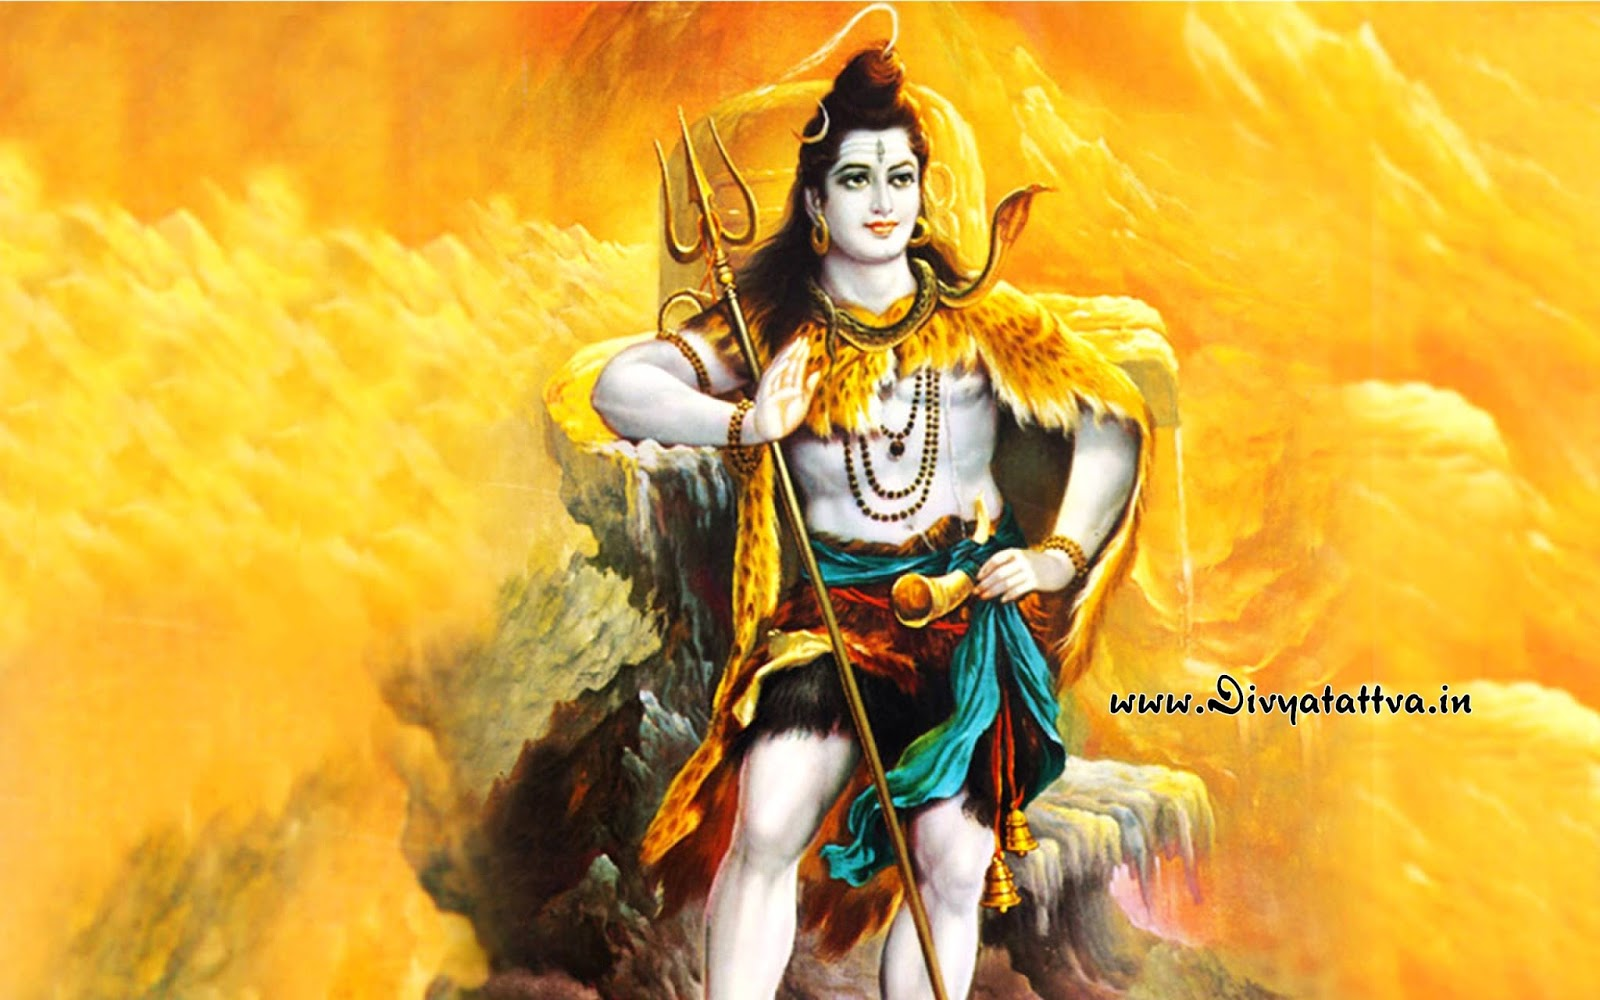 Lord Shiva Animated 3d Wallpapers Group 39 Download for free